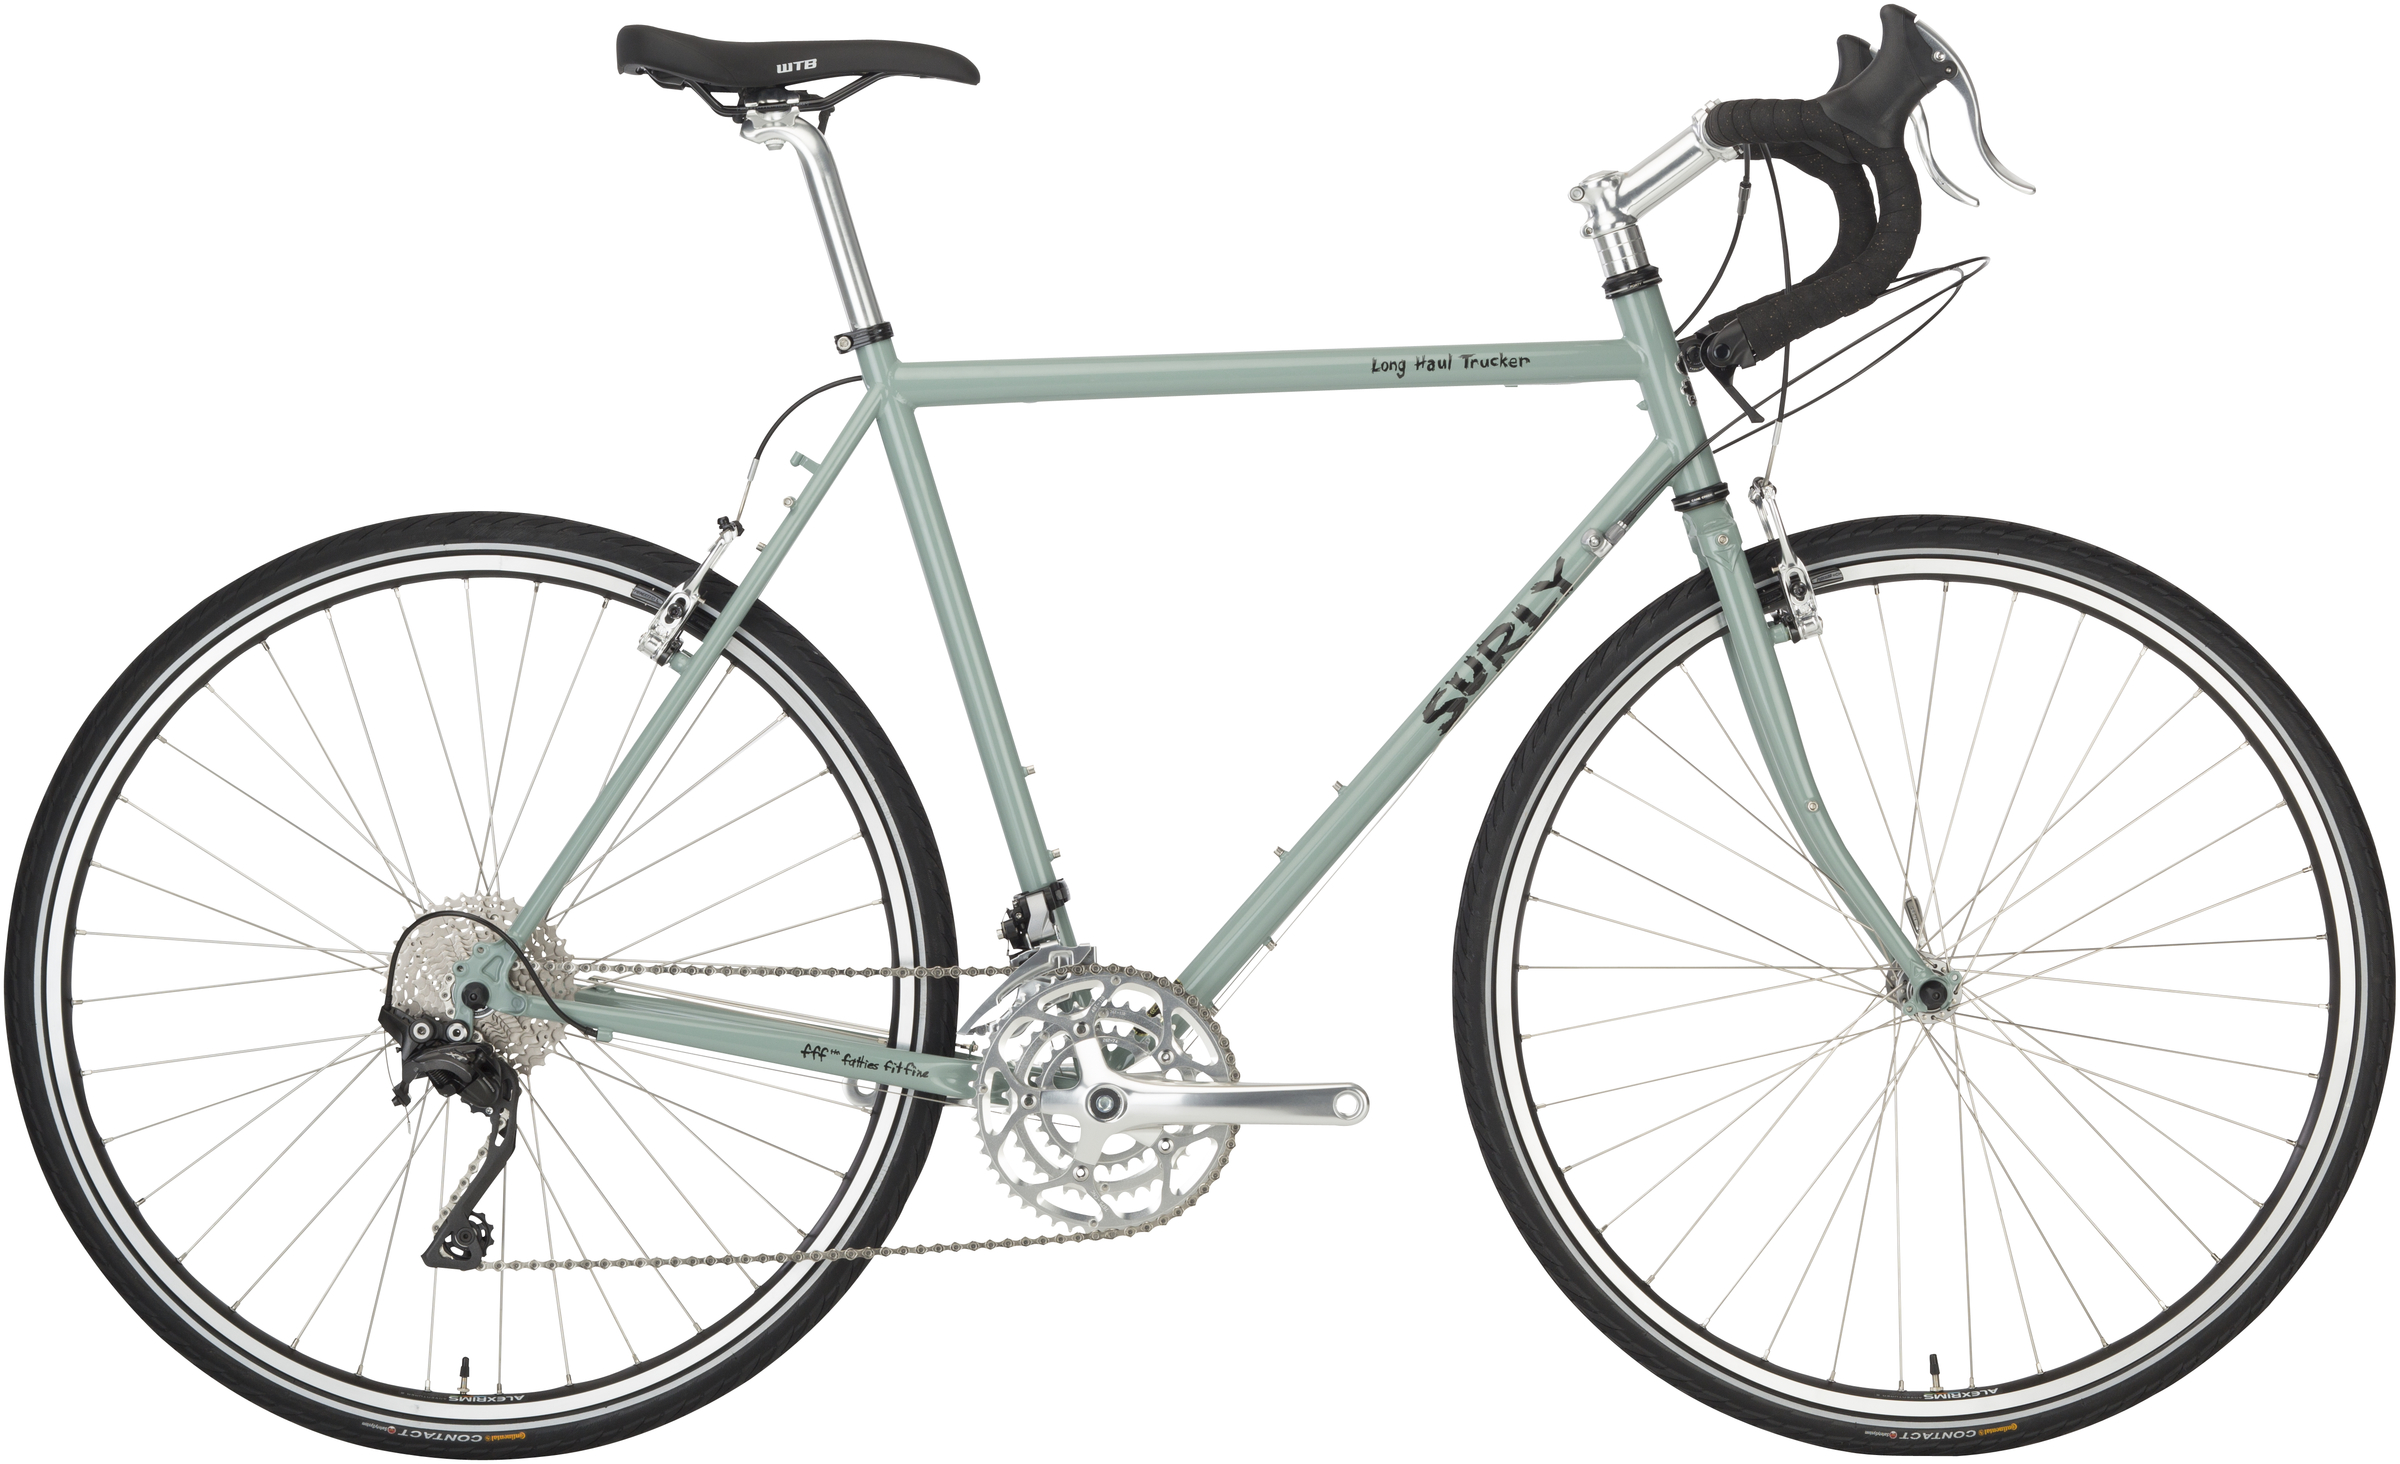 Superior Surly Long Haul Trucker Complete Bike